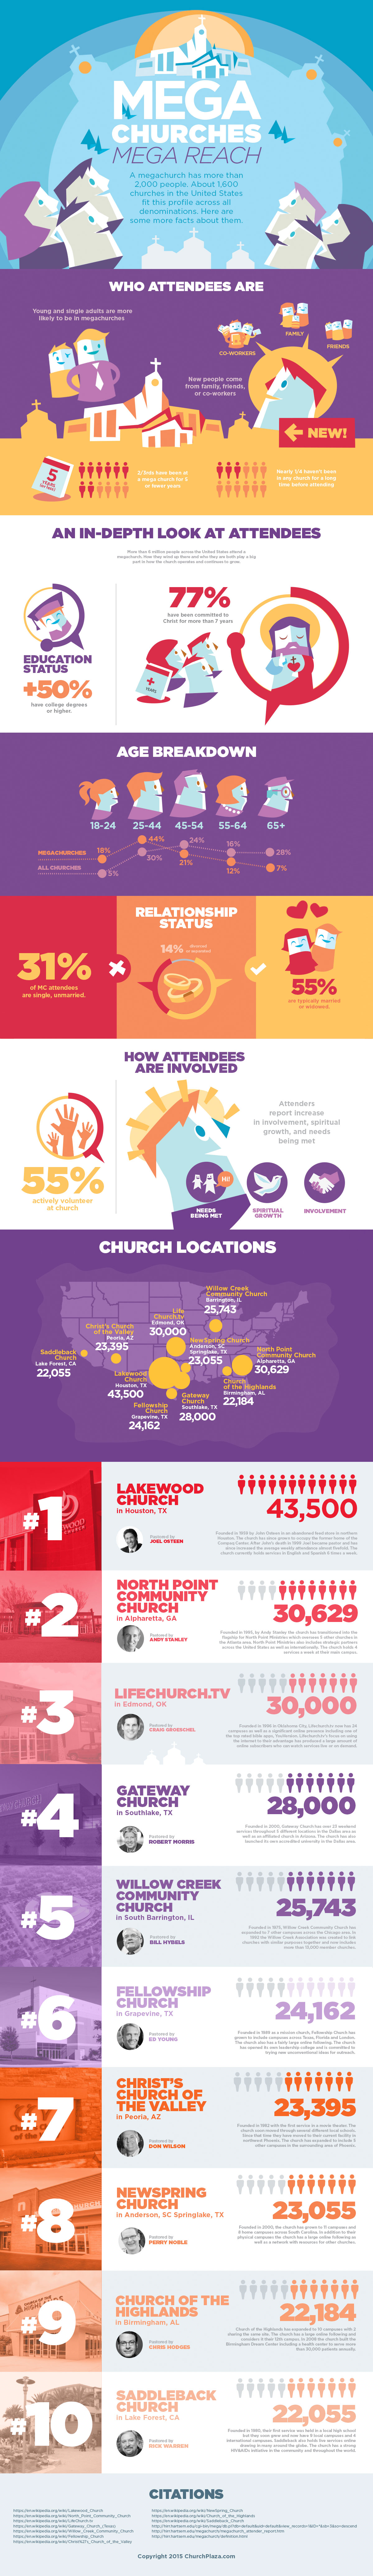 Megachurch Attendee Infographic